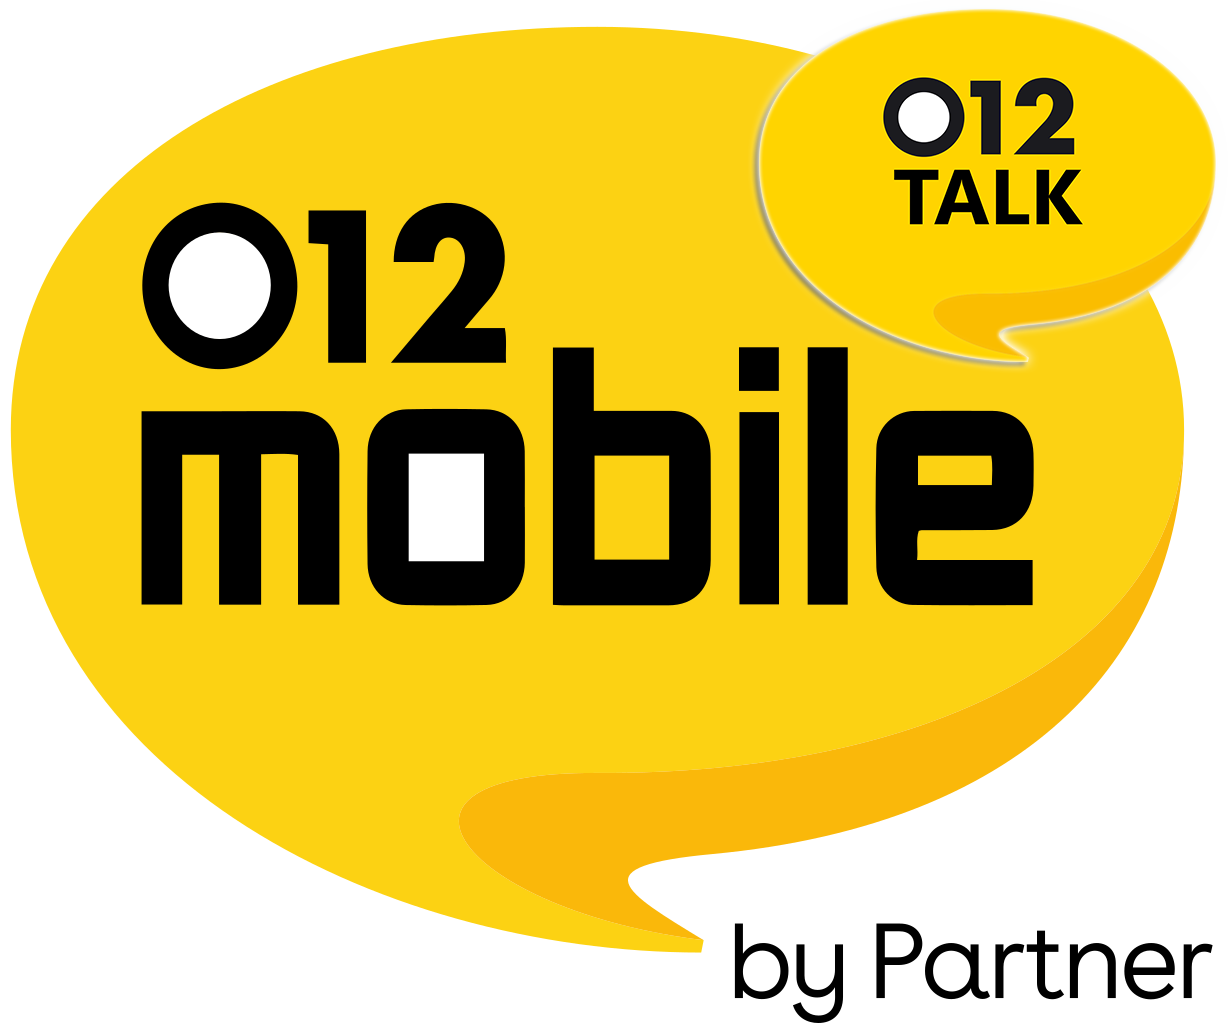 012 mobile israel refill recharge sim online 012Talk